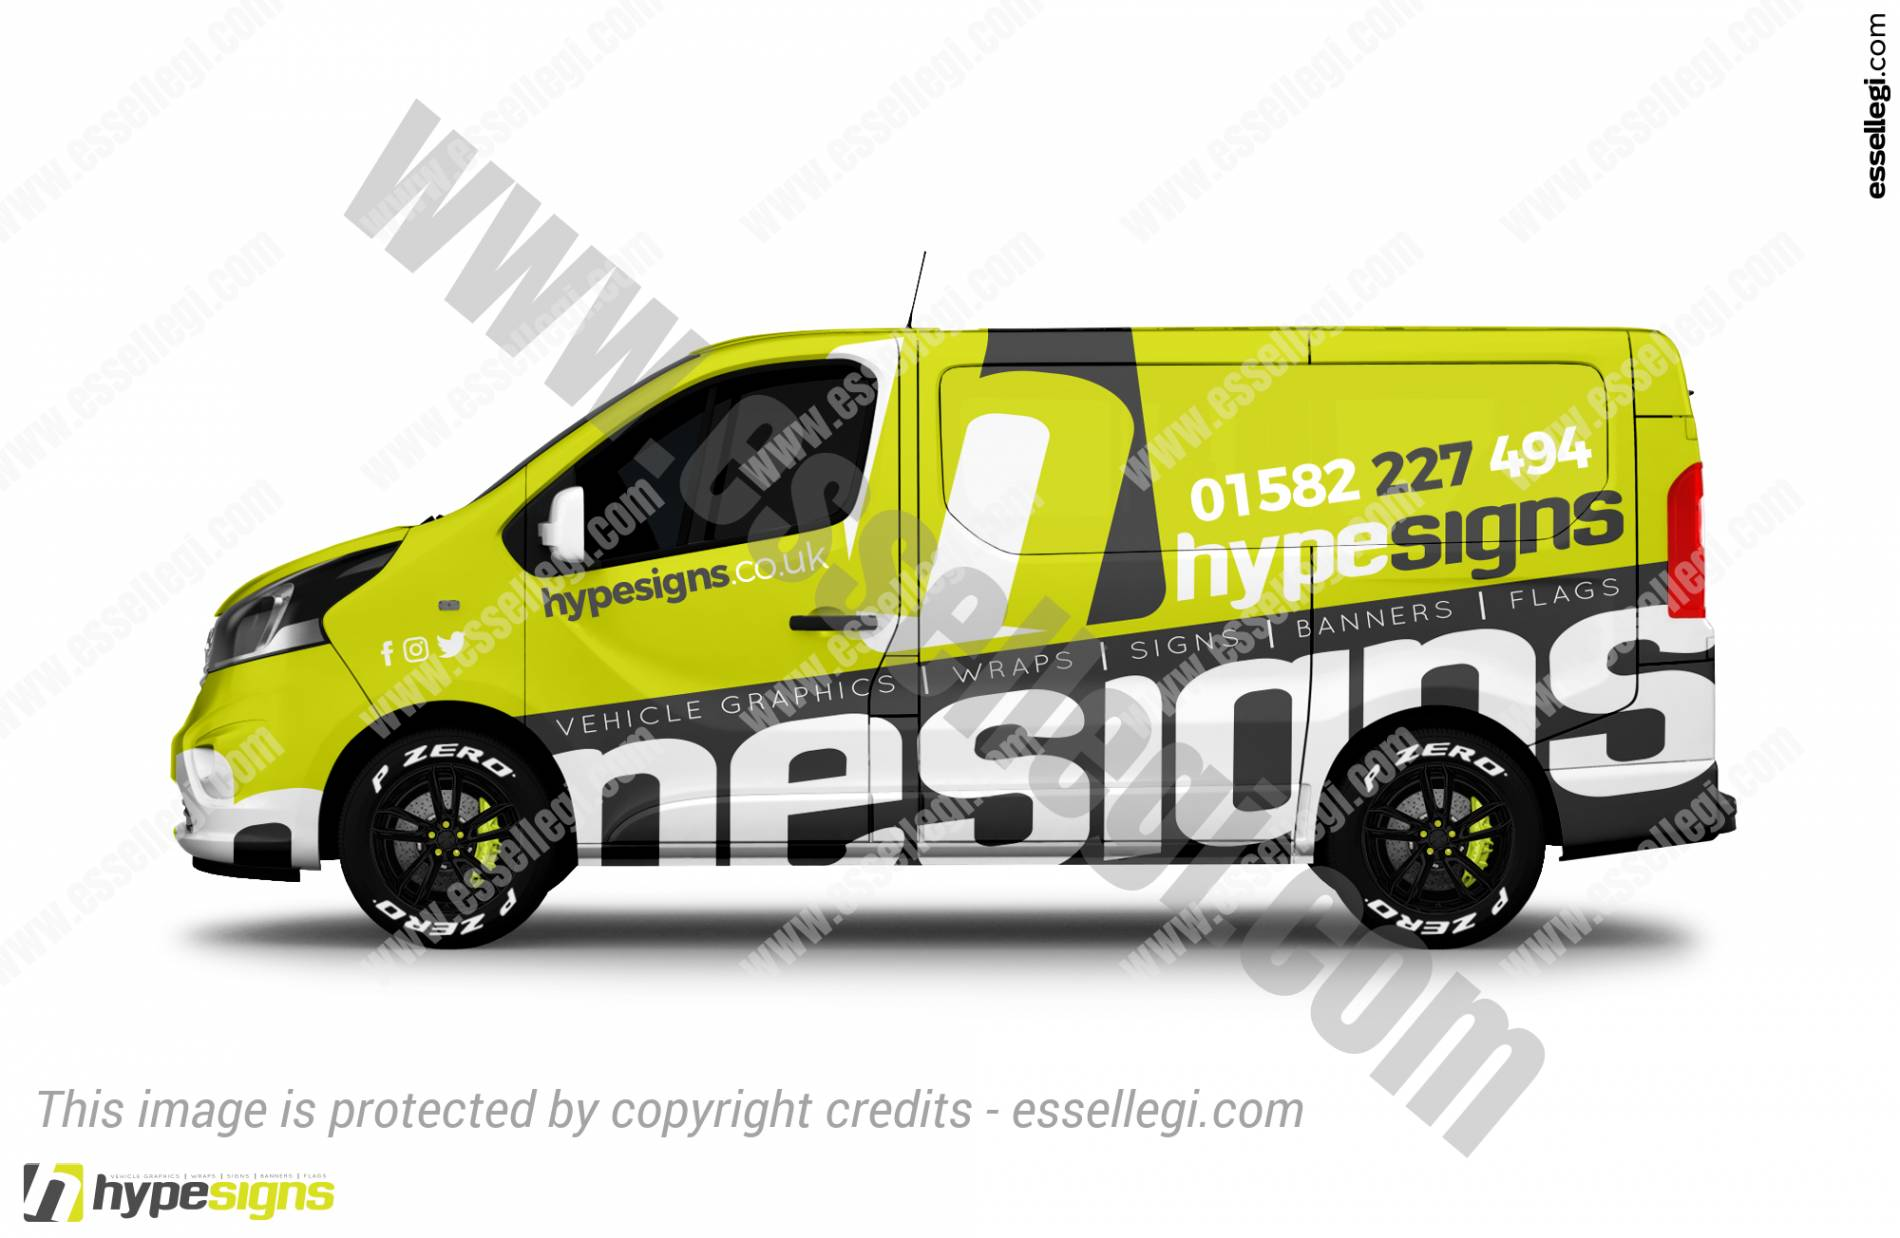 HYPESIGNS | VAN WRAP DESIGN 🇬🇧